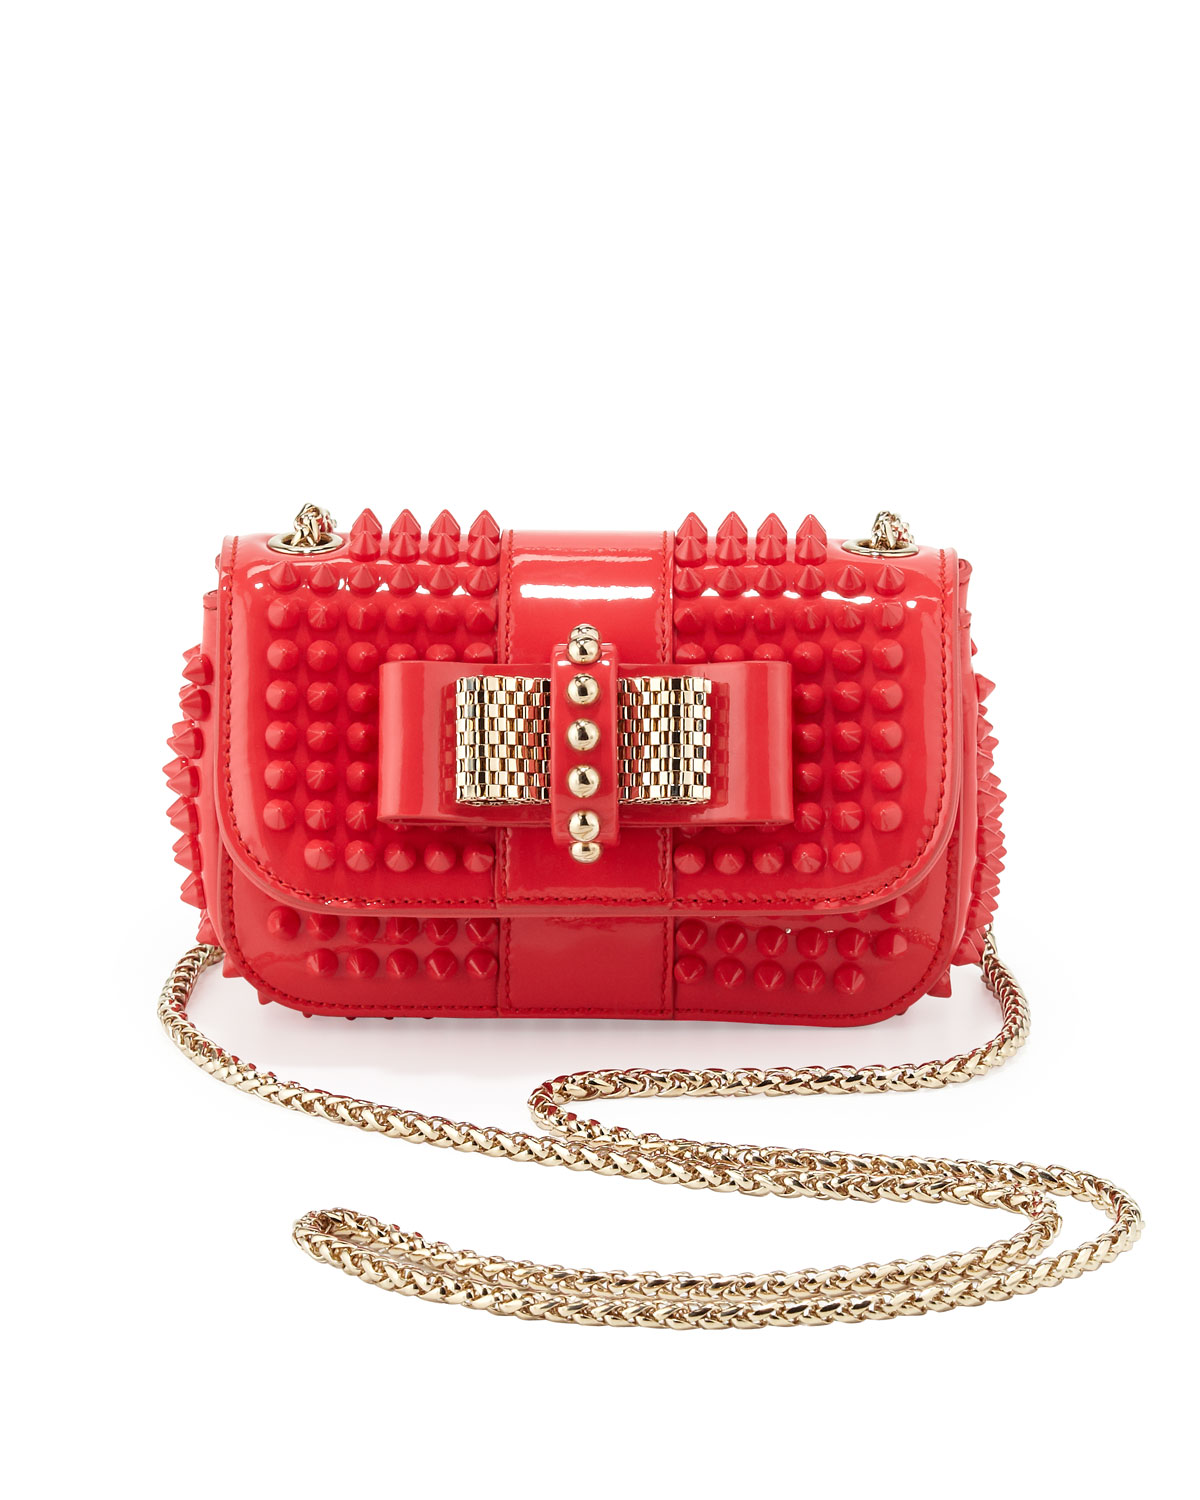 a63dcb216eb Christian Louboutin Pink Sweety Charity Spiked Crossbody Bag